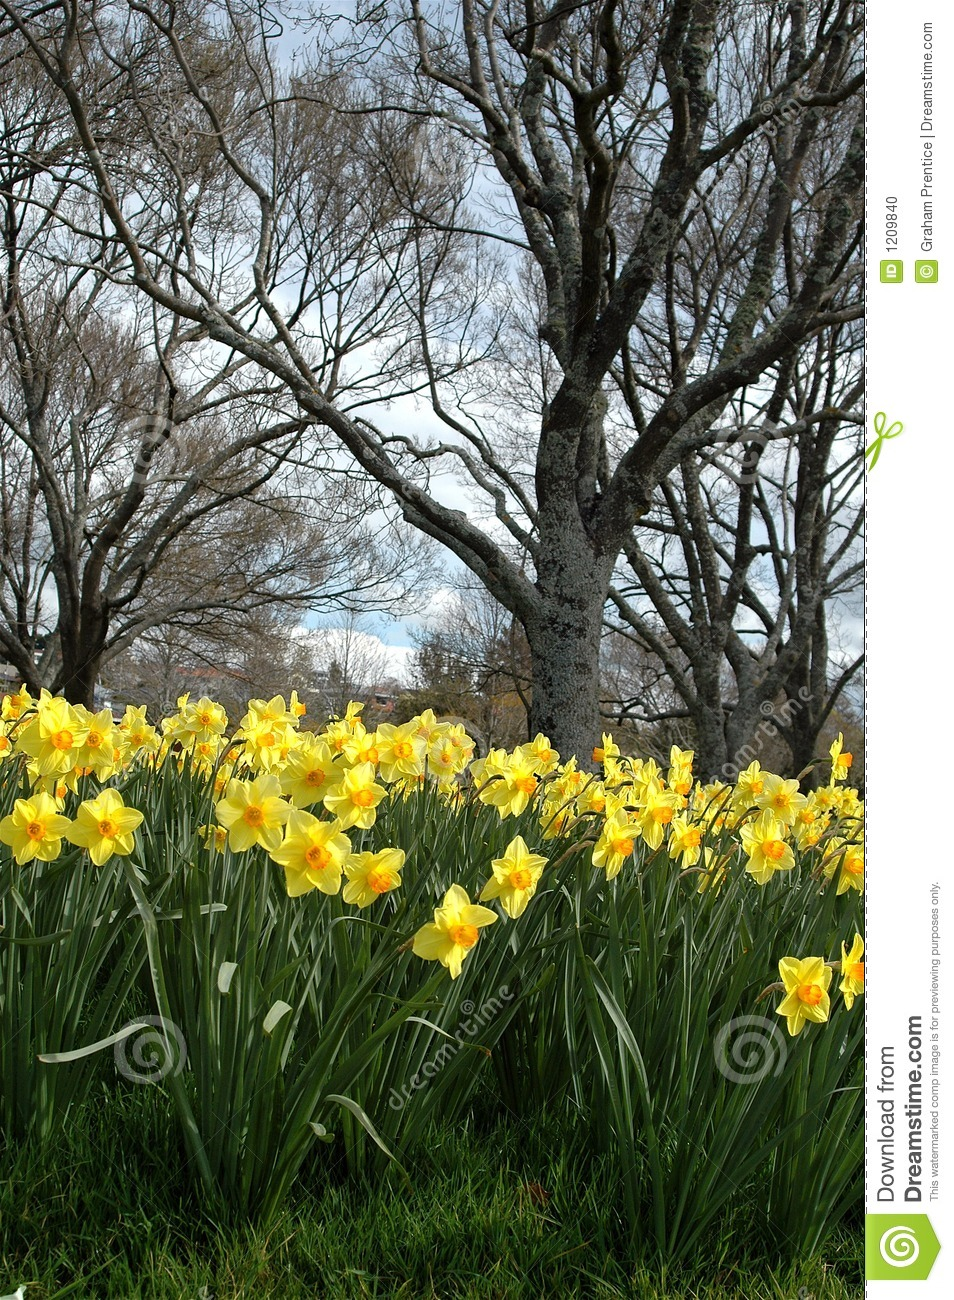 Daffodils In Spring Stock Photo - Image: 1209840